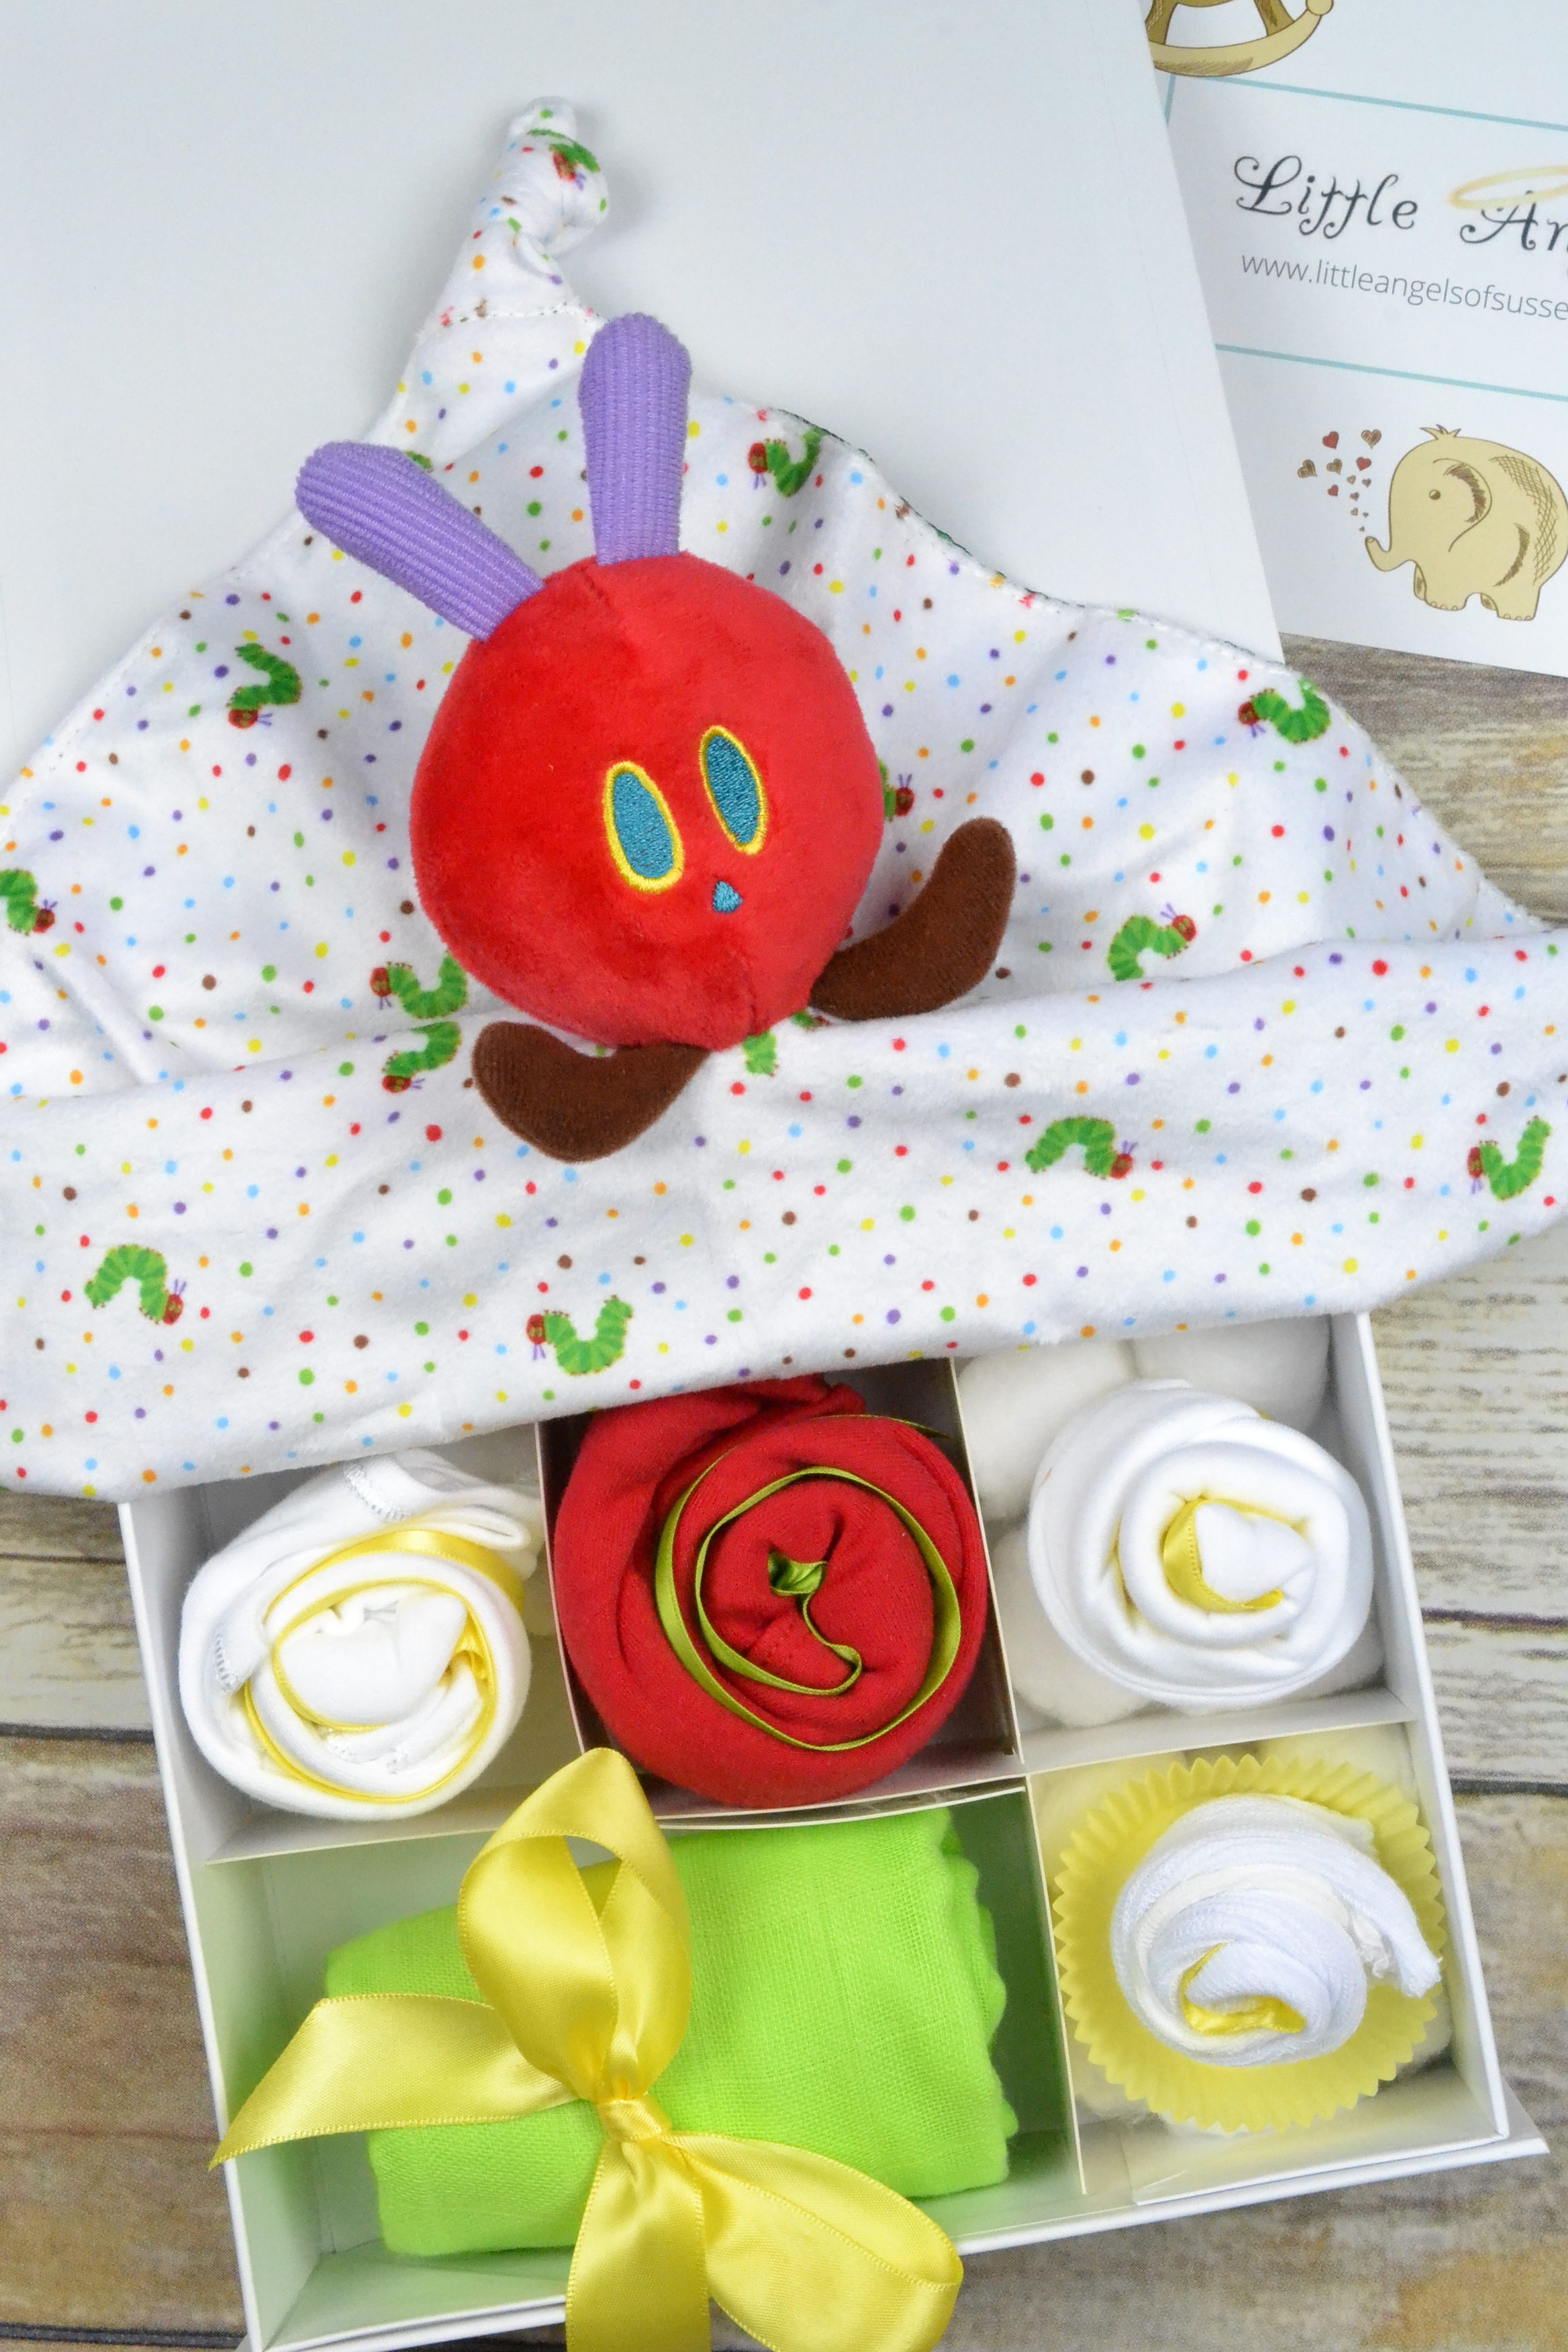 The Hungry Caterpillar Clothing Cupcake Gift Box